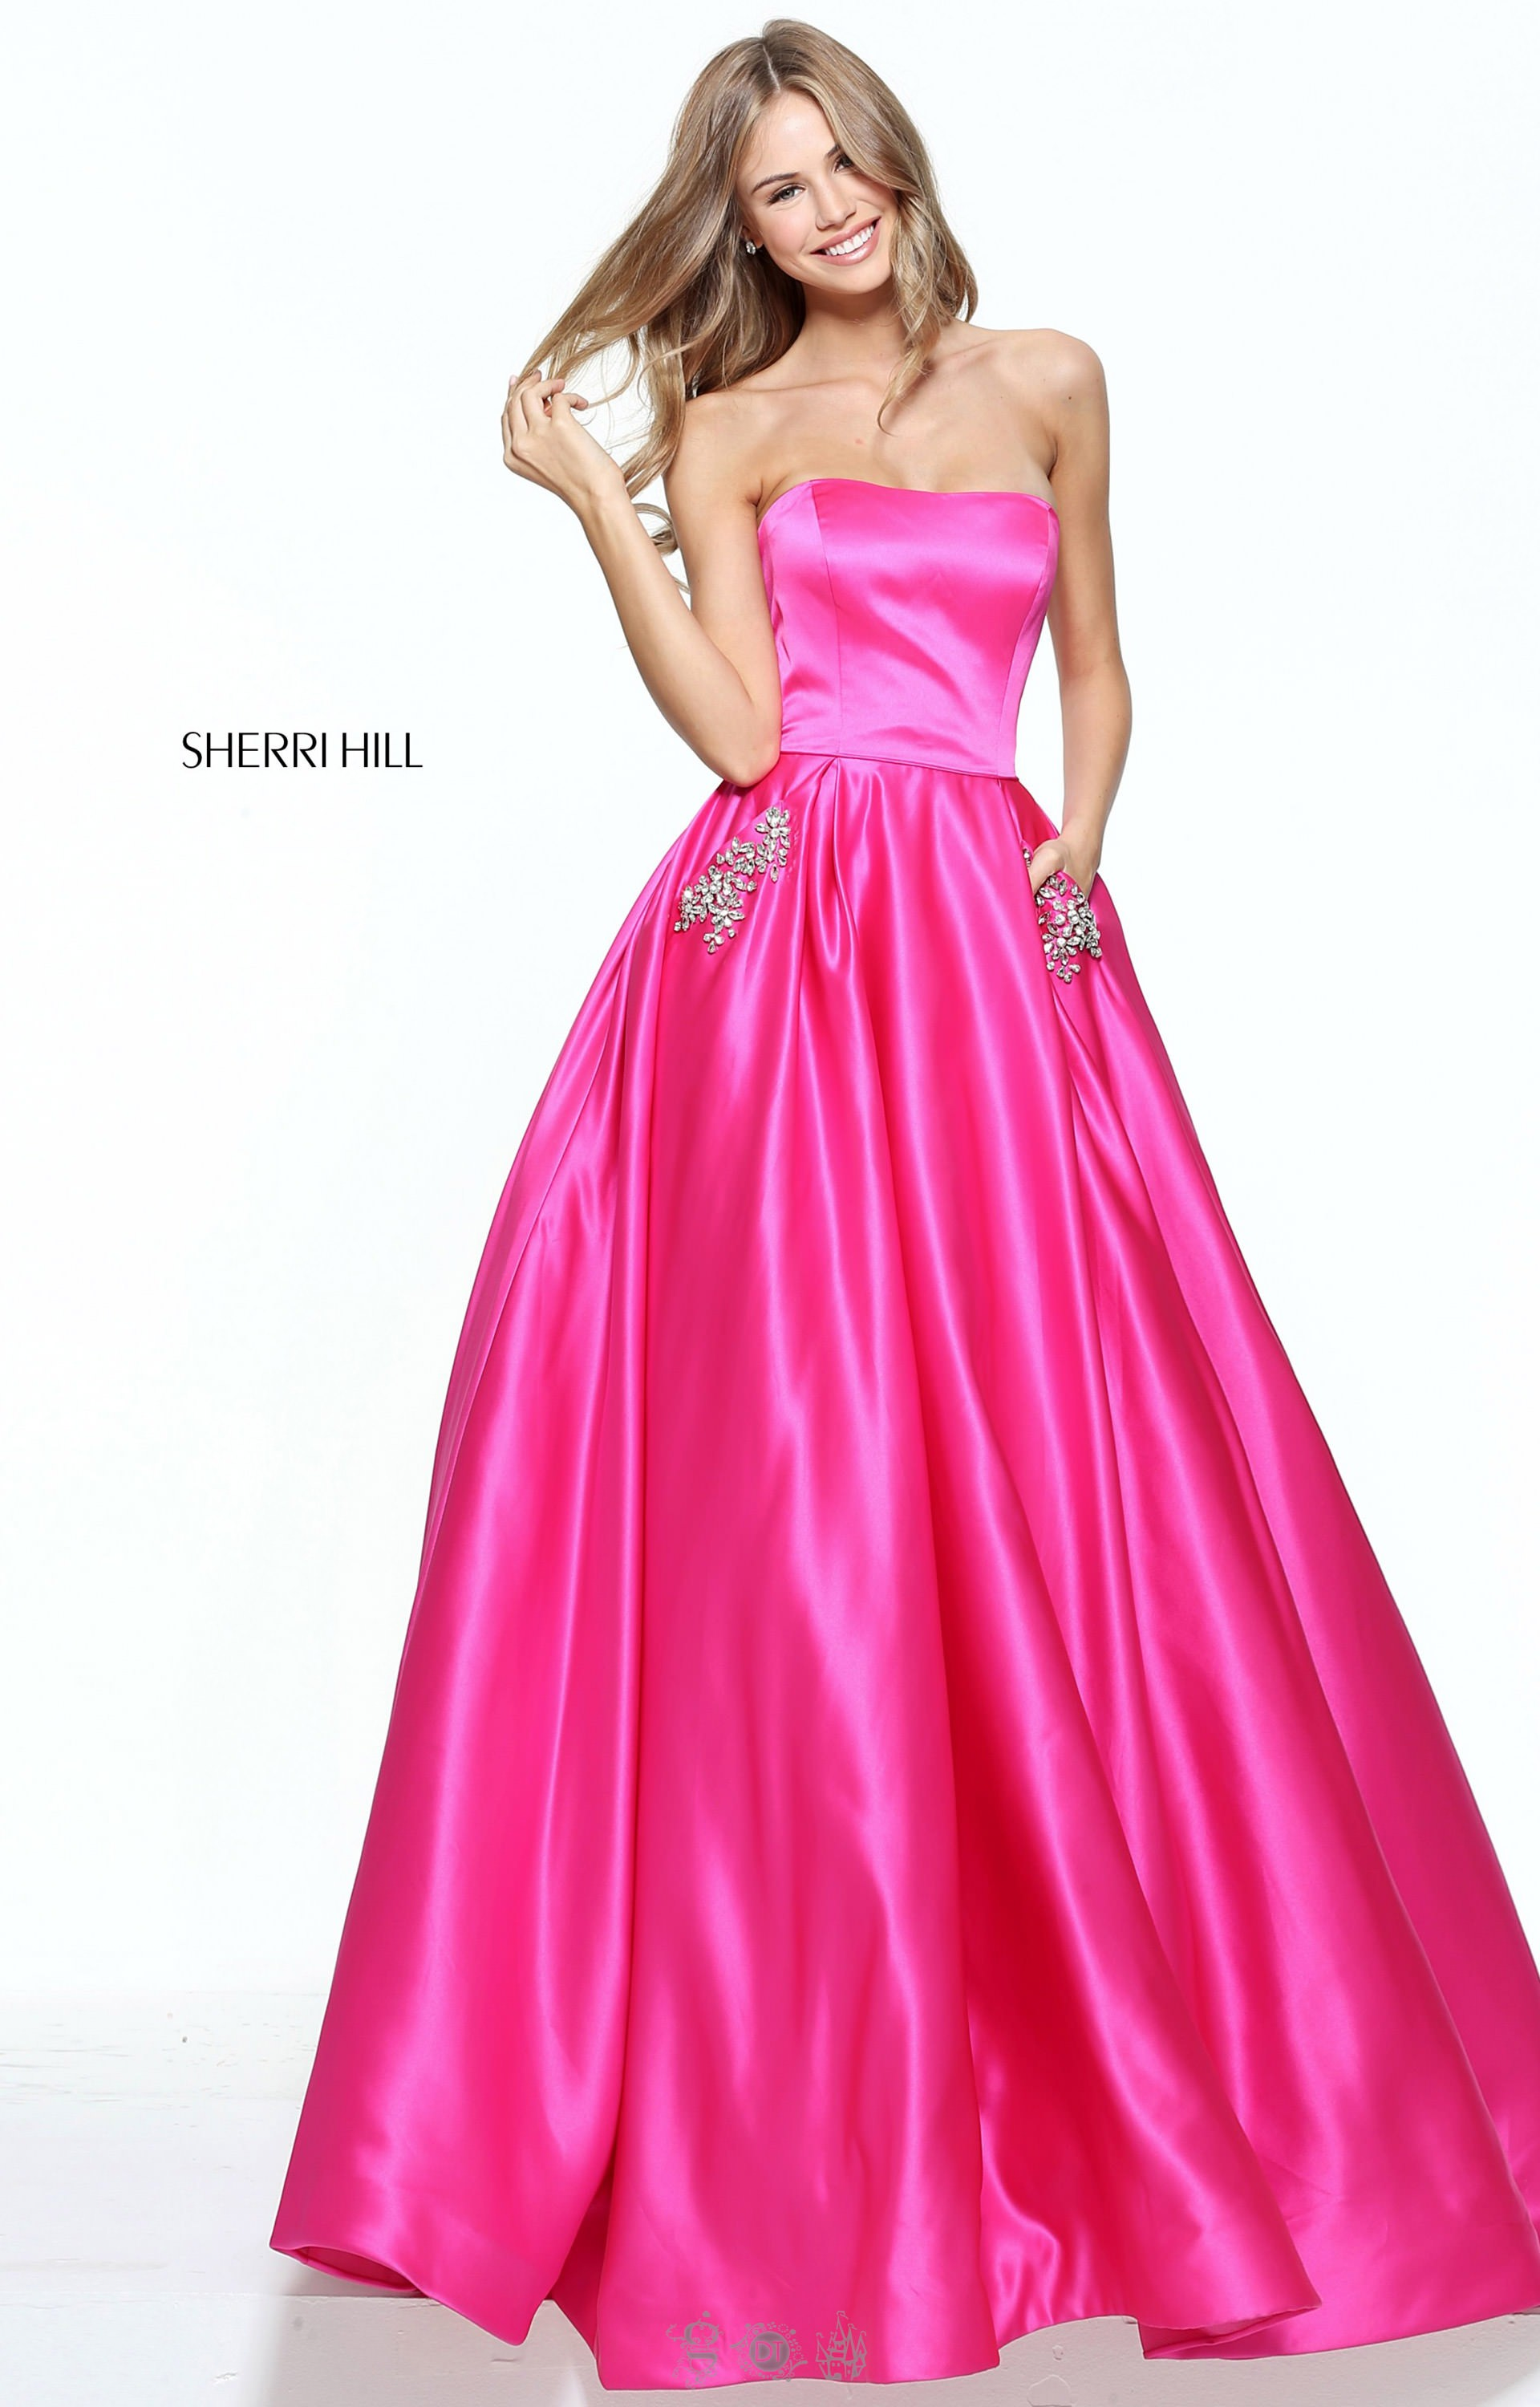 Sherri Hill 50812 Strapless Satin Ballgown With Beaded